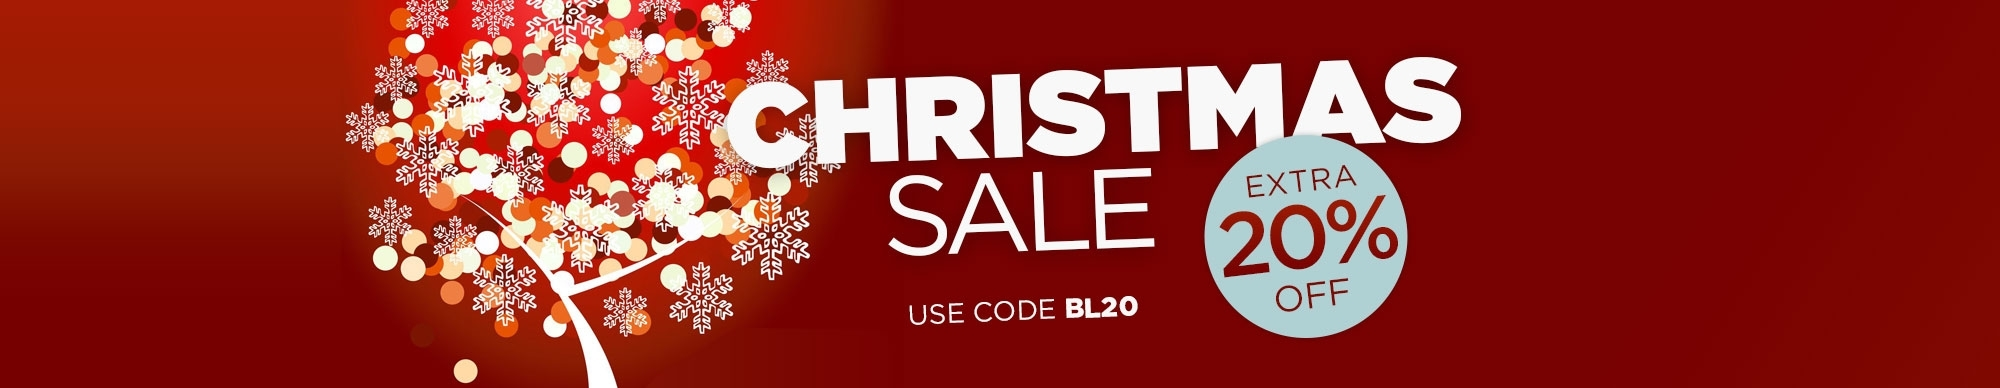 Christmas Sale Dec 17